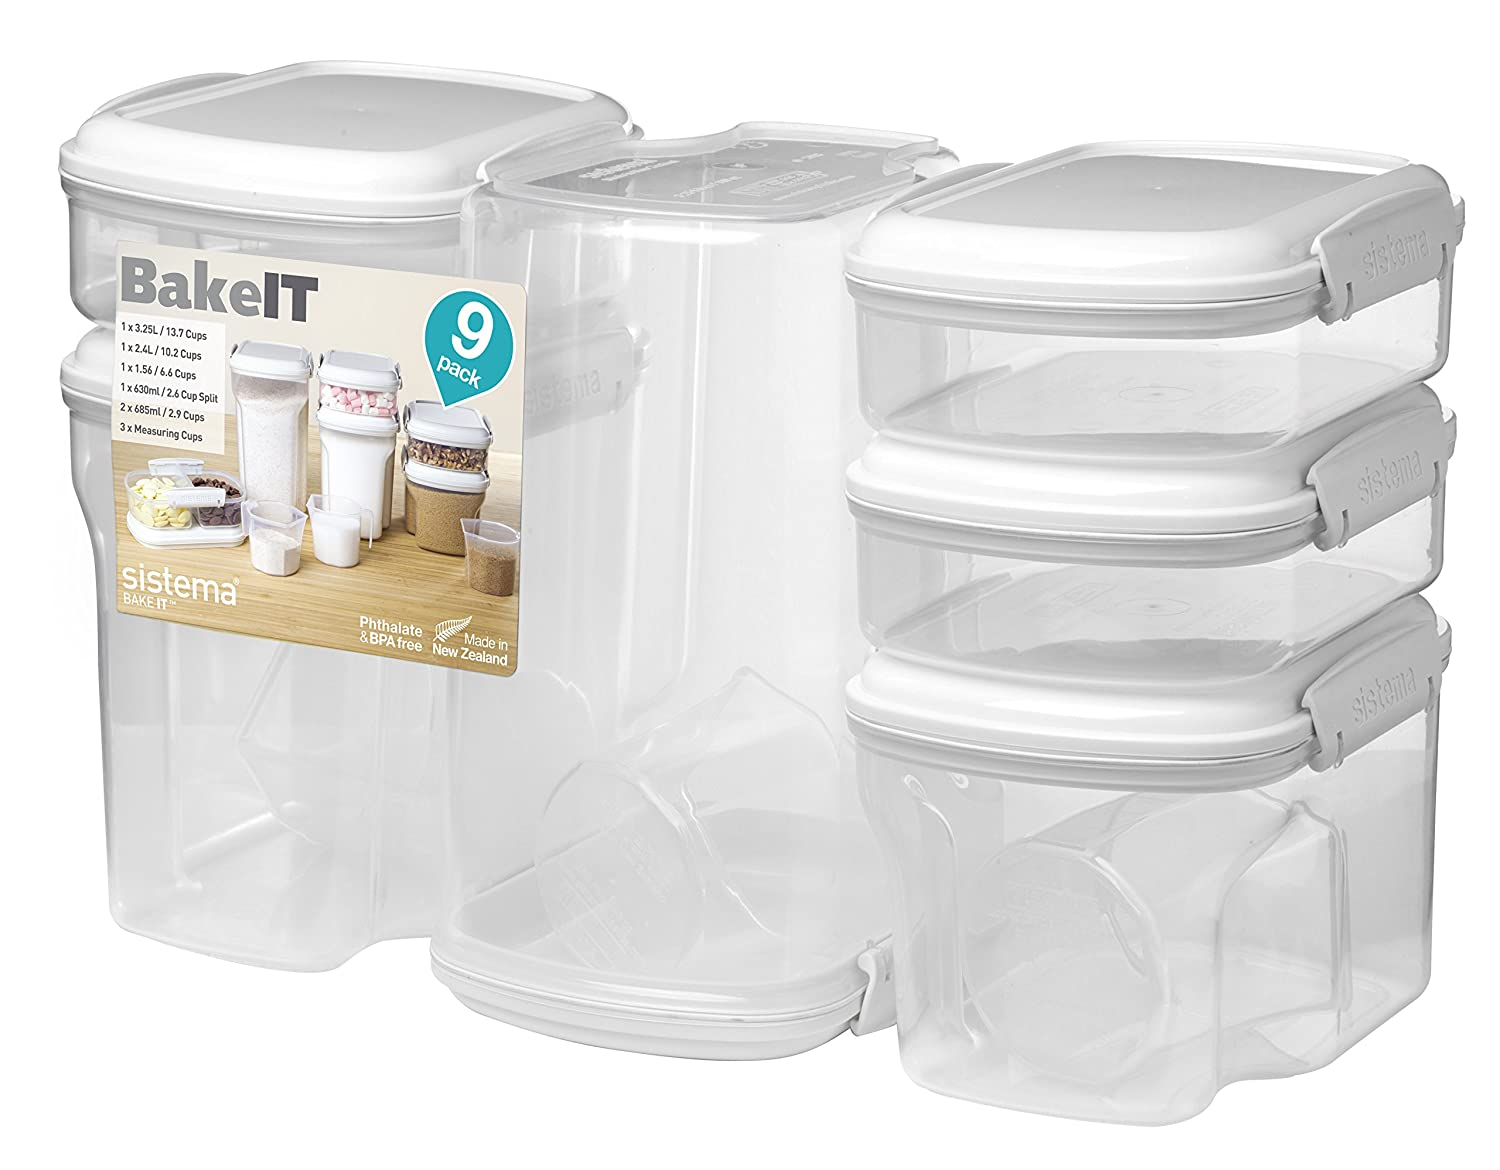 Amazoncom Sistema Bake IT Collection Food Storage Containers